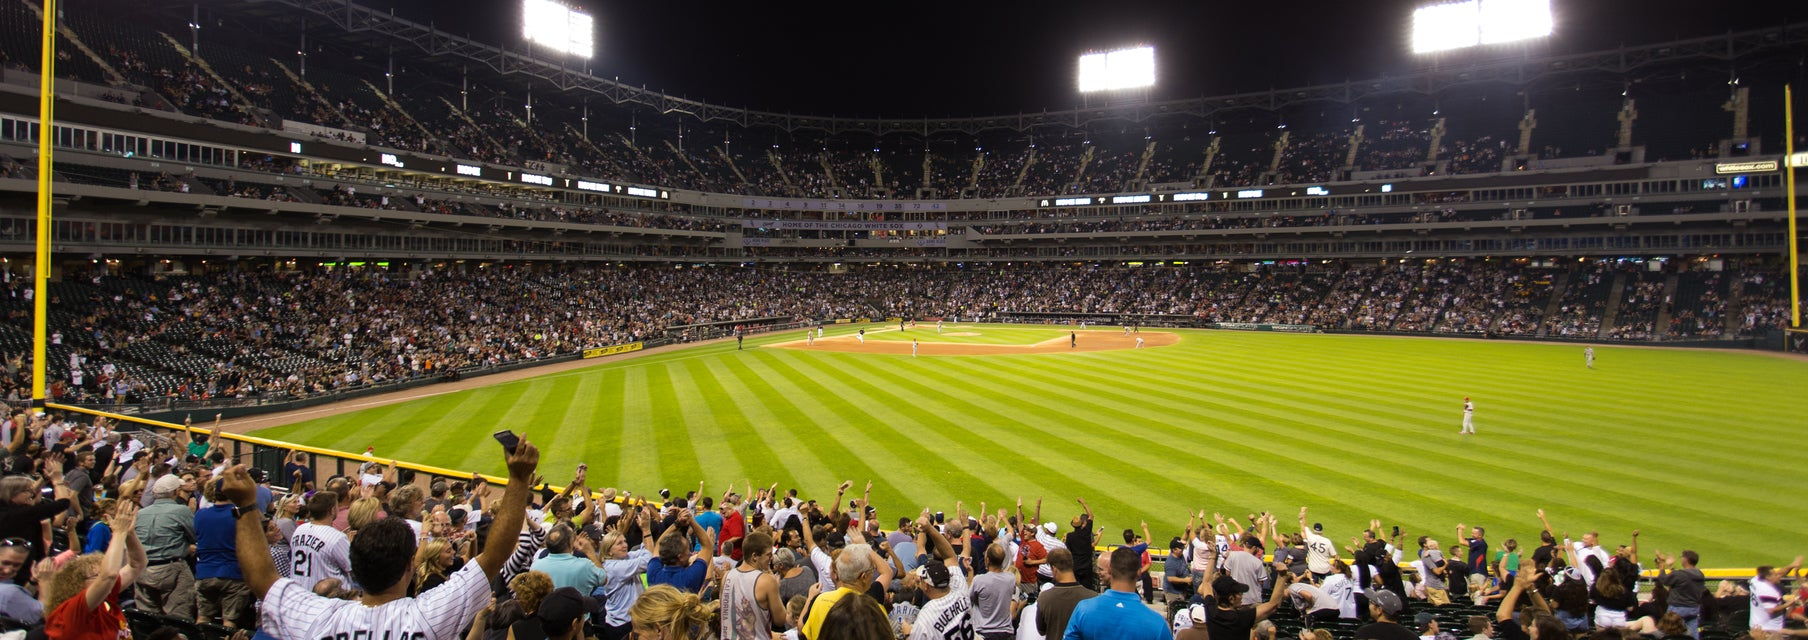 Seat view from Outfield Reserved